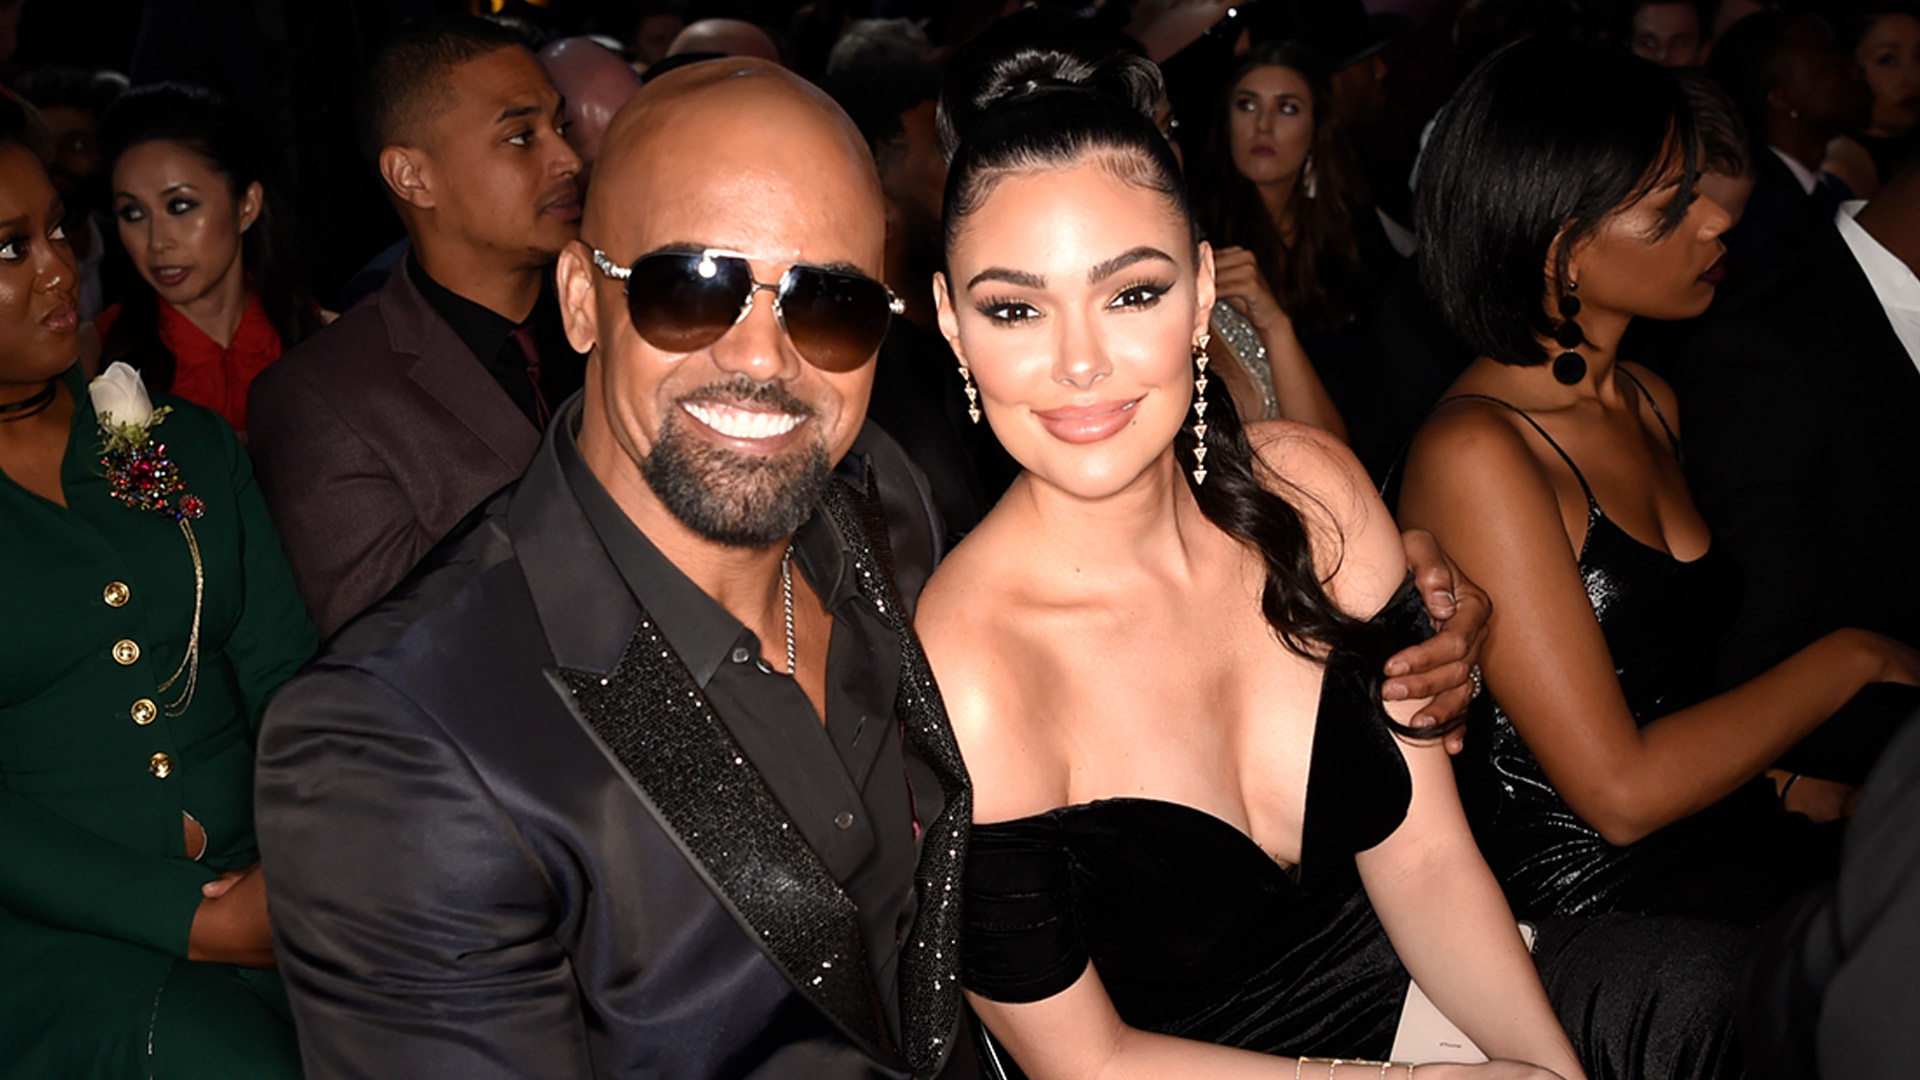 S.W.A.T. star and GRAMMY presenter Shemar Moore throws an arm around his co-star Lina Esco.